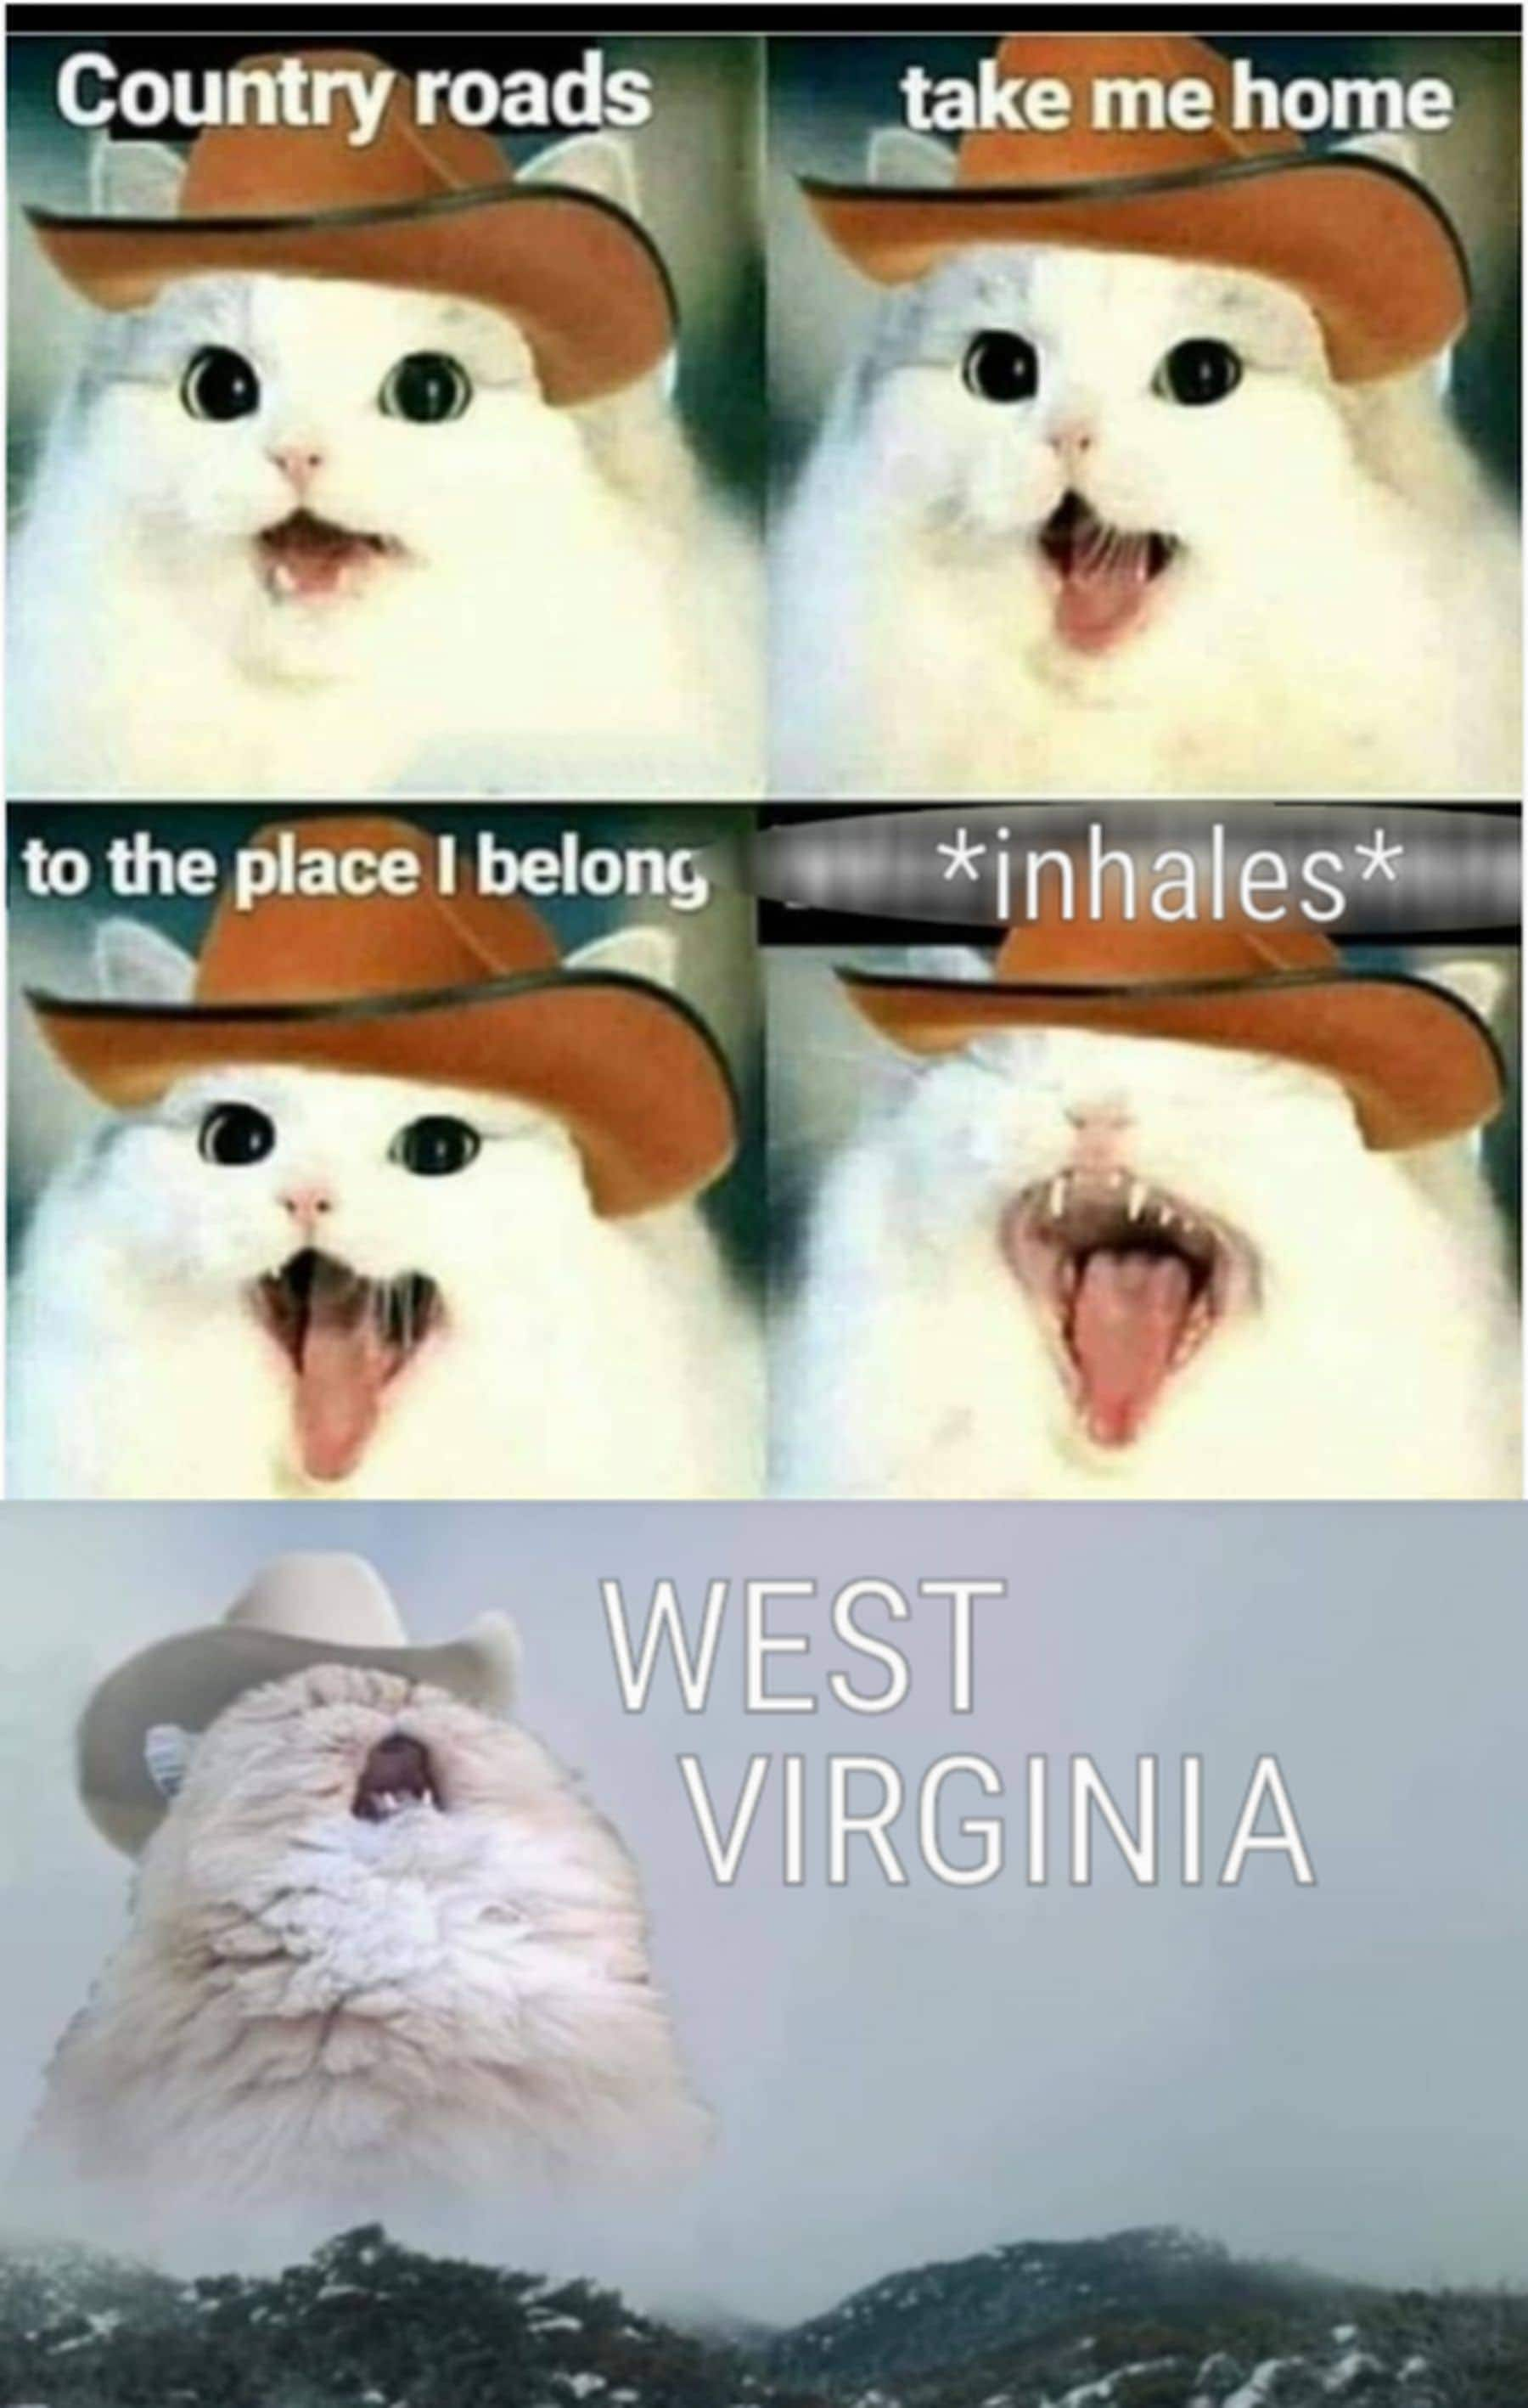 Country roads take me home to the place I belong *inhales* - West Virginia